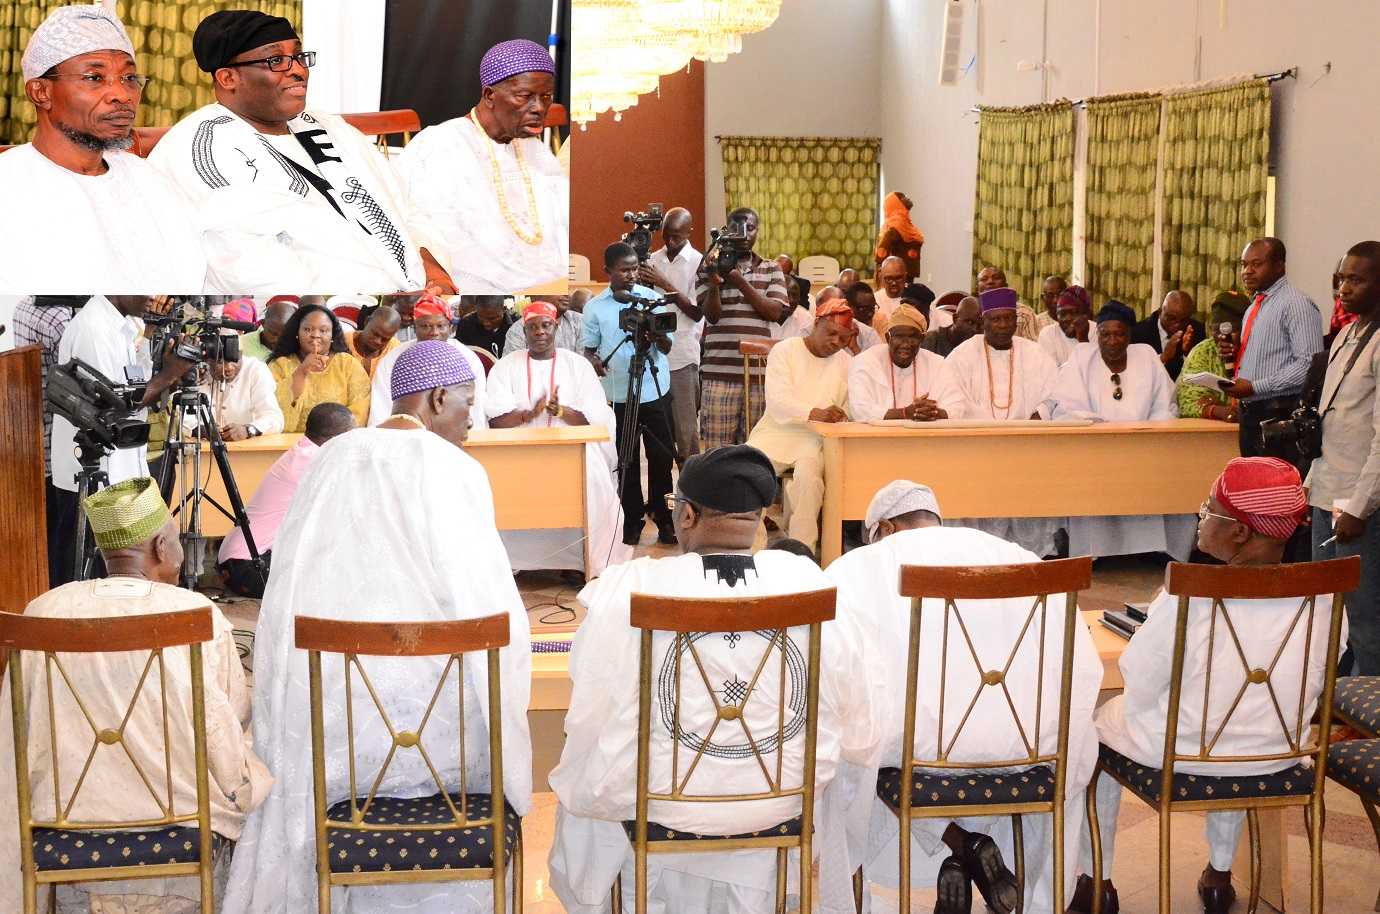 Governor State of Osun, Ogbeni Rauf Aregbesola; Prince Adetokunbo Sijuwade, Obalufe of Iremo, Oba Solomon Folorunso Omisakin, during their visit to tell the Governor that Ooni of Ile-Ife, Oba Okunade Sijuwade has joined his ancestors, at the Government House, Osogbo, on Wednesday 12/08/2015